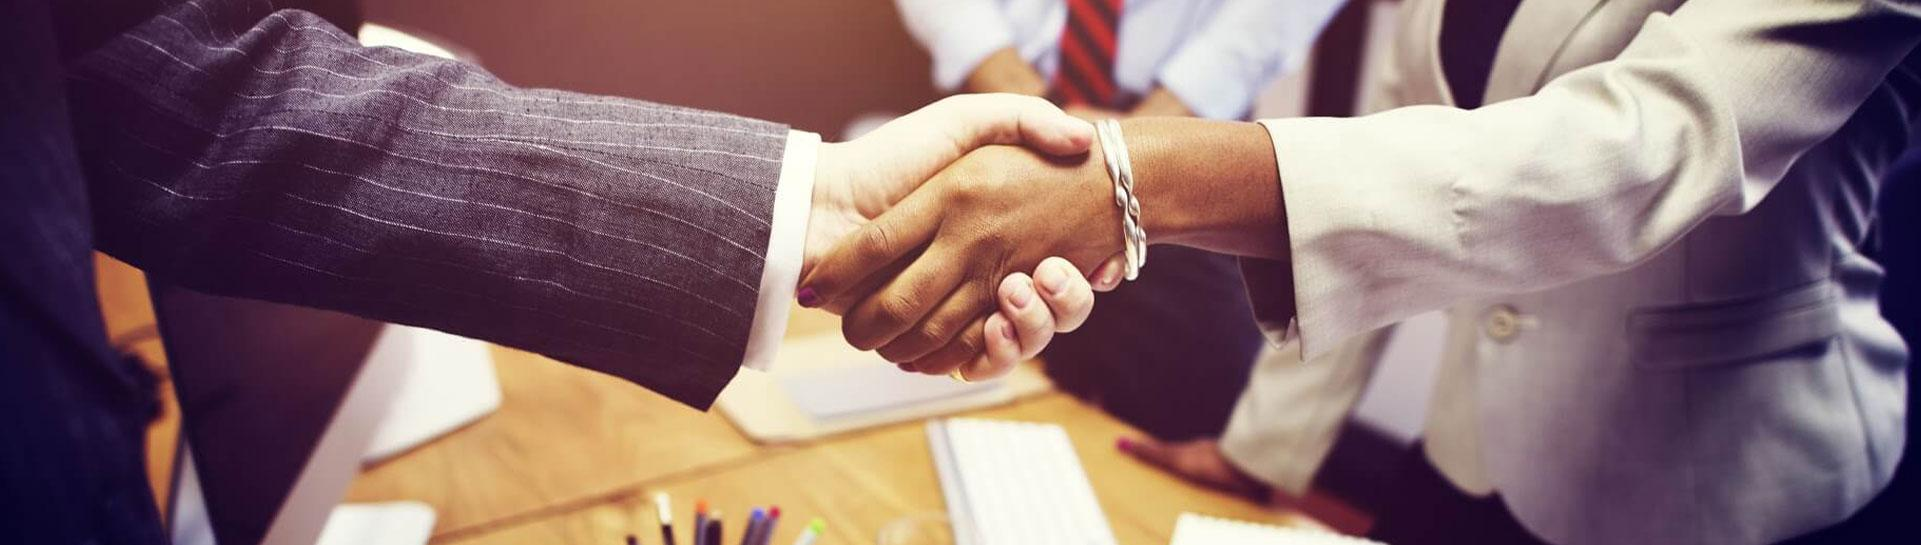 College Graduate Shaking Hands with Employer